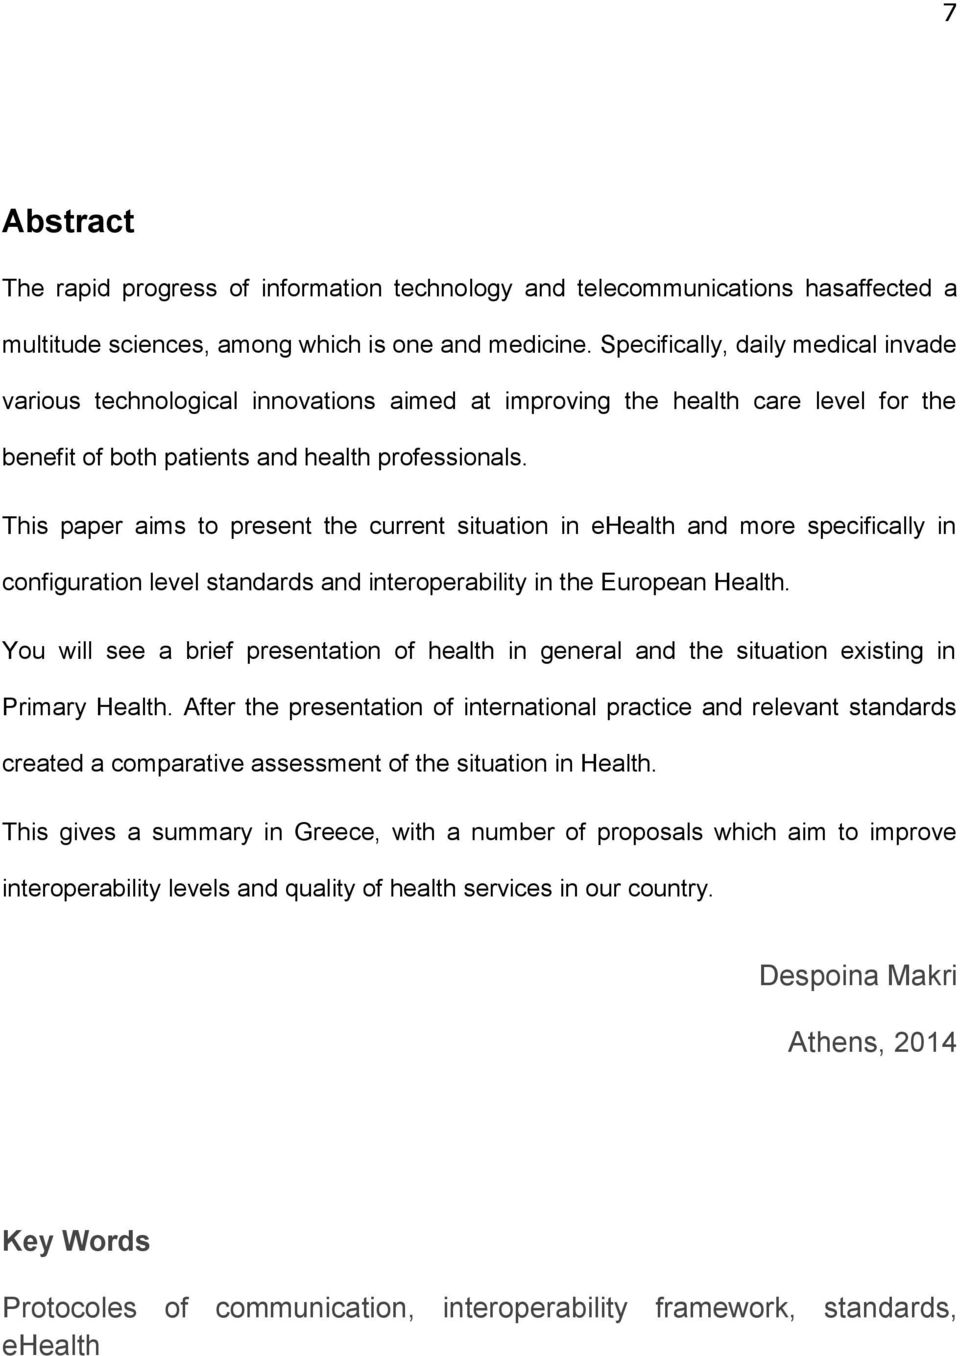 This paper aims to present the current situation in ehealth and more specifically in configuration level standards and interoperability in the European Health.